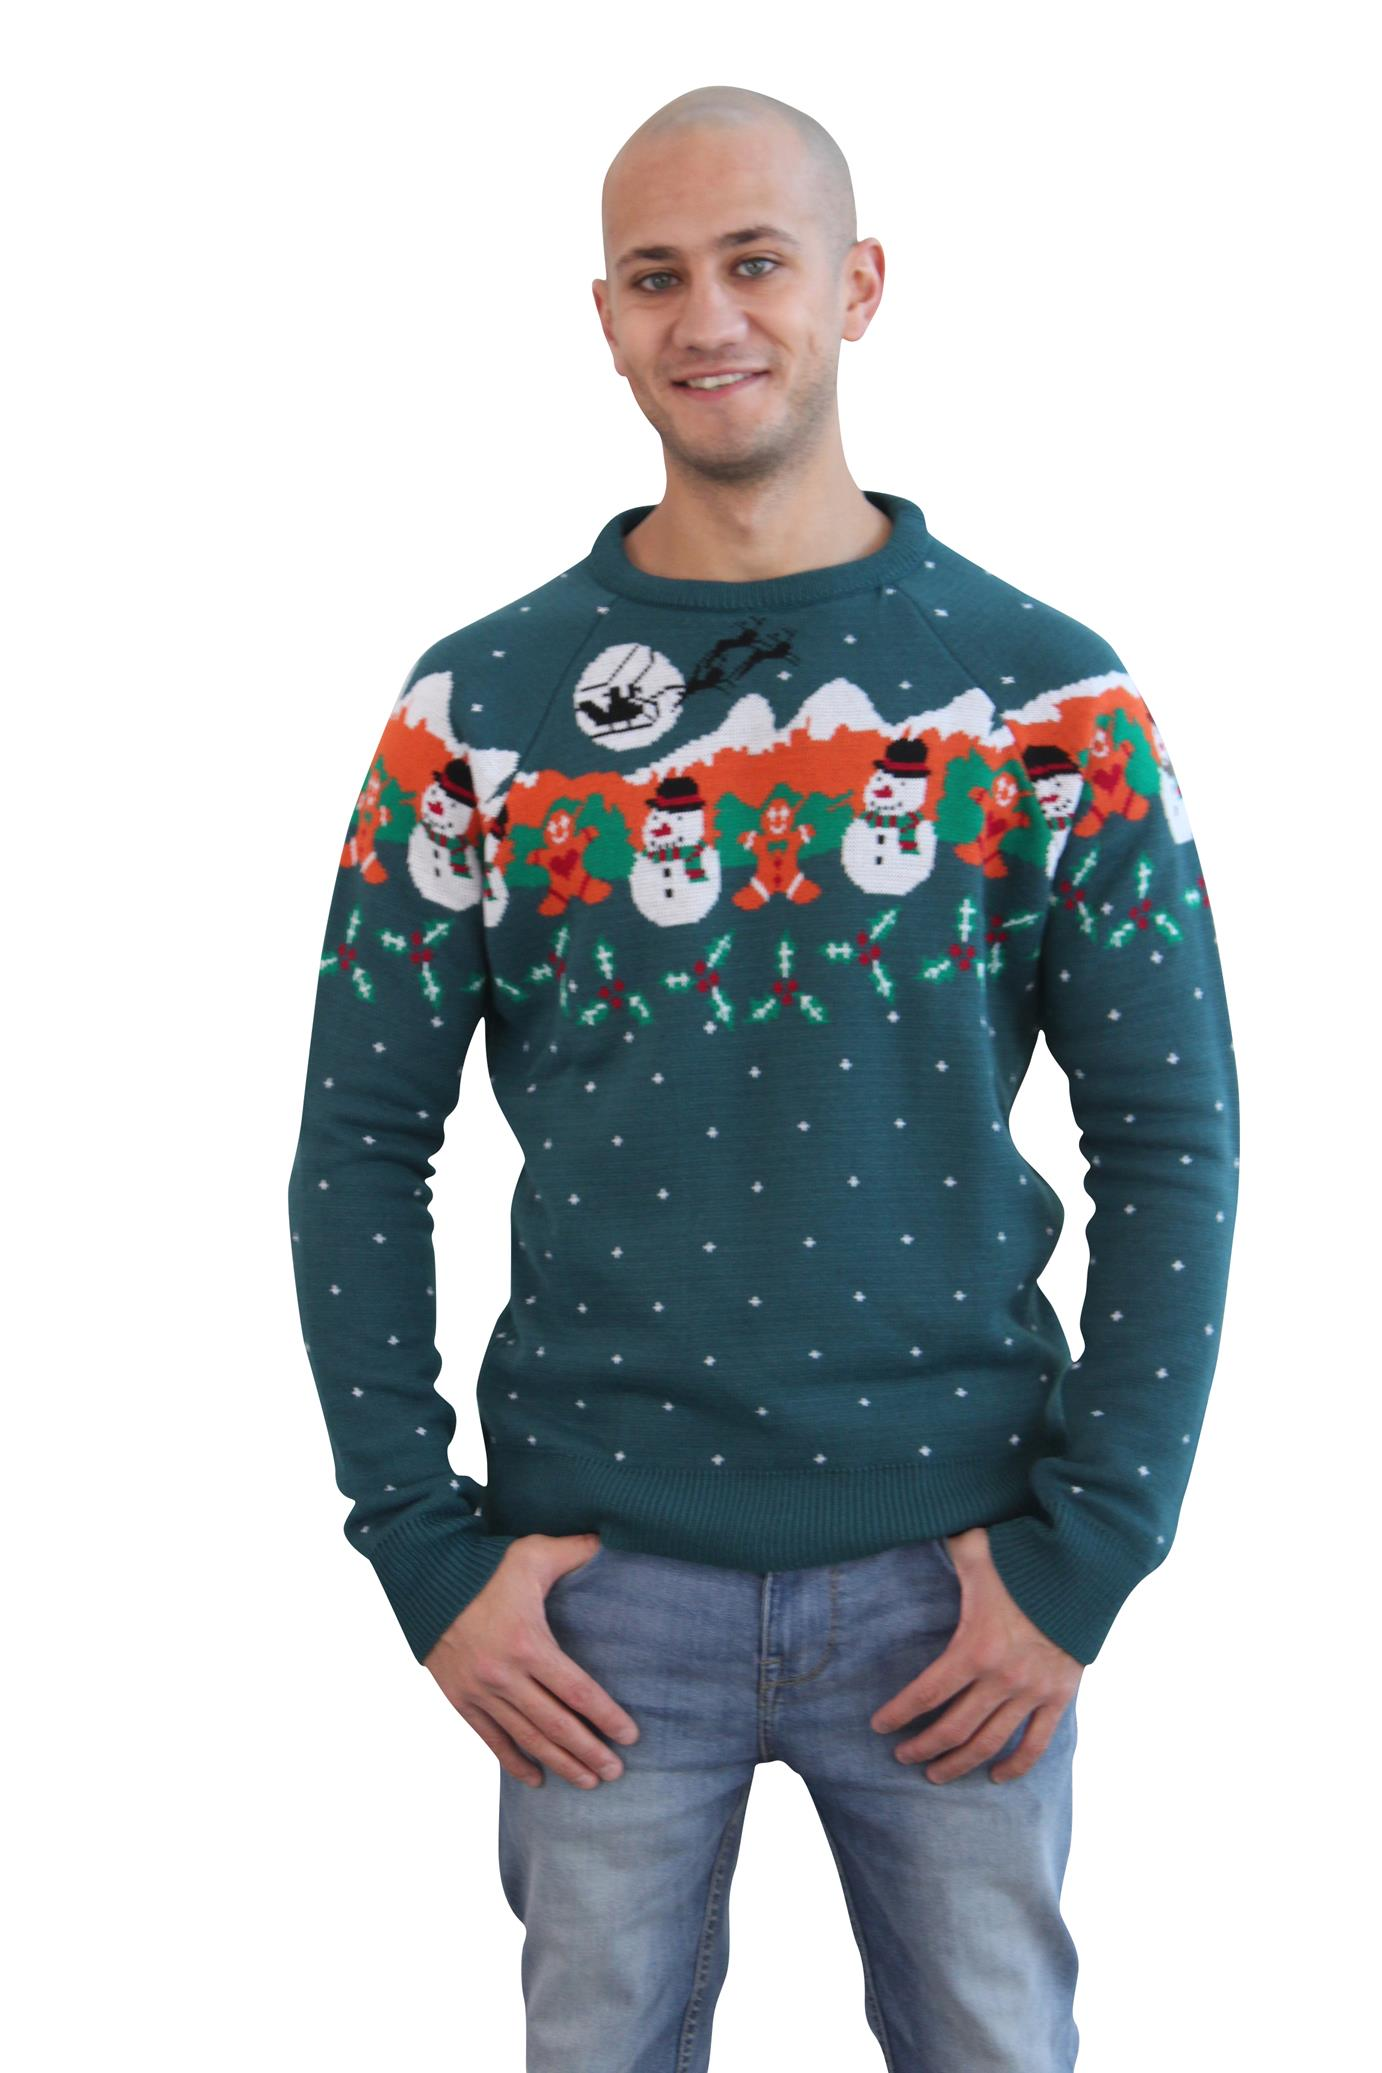 Mens Christmas jumpers a hottest trend